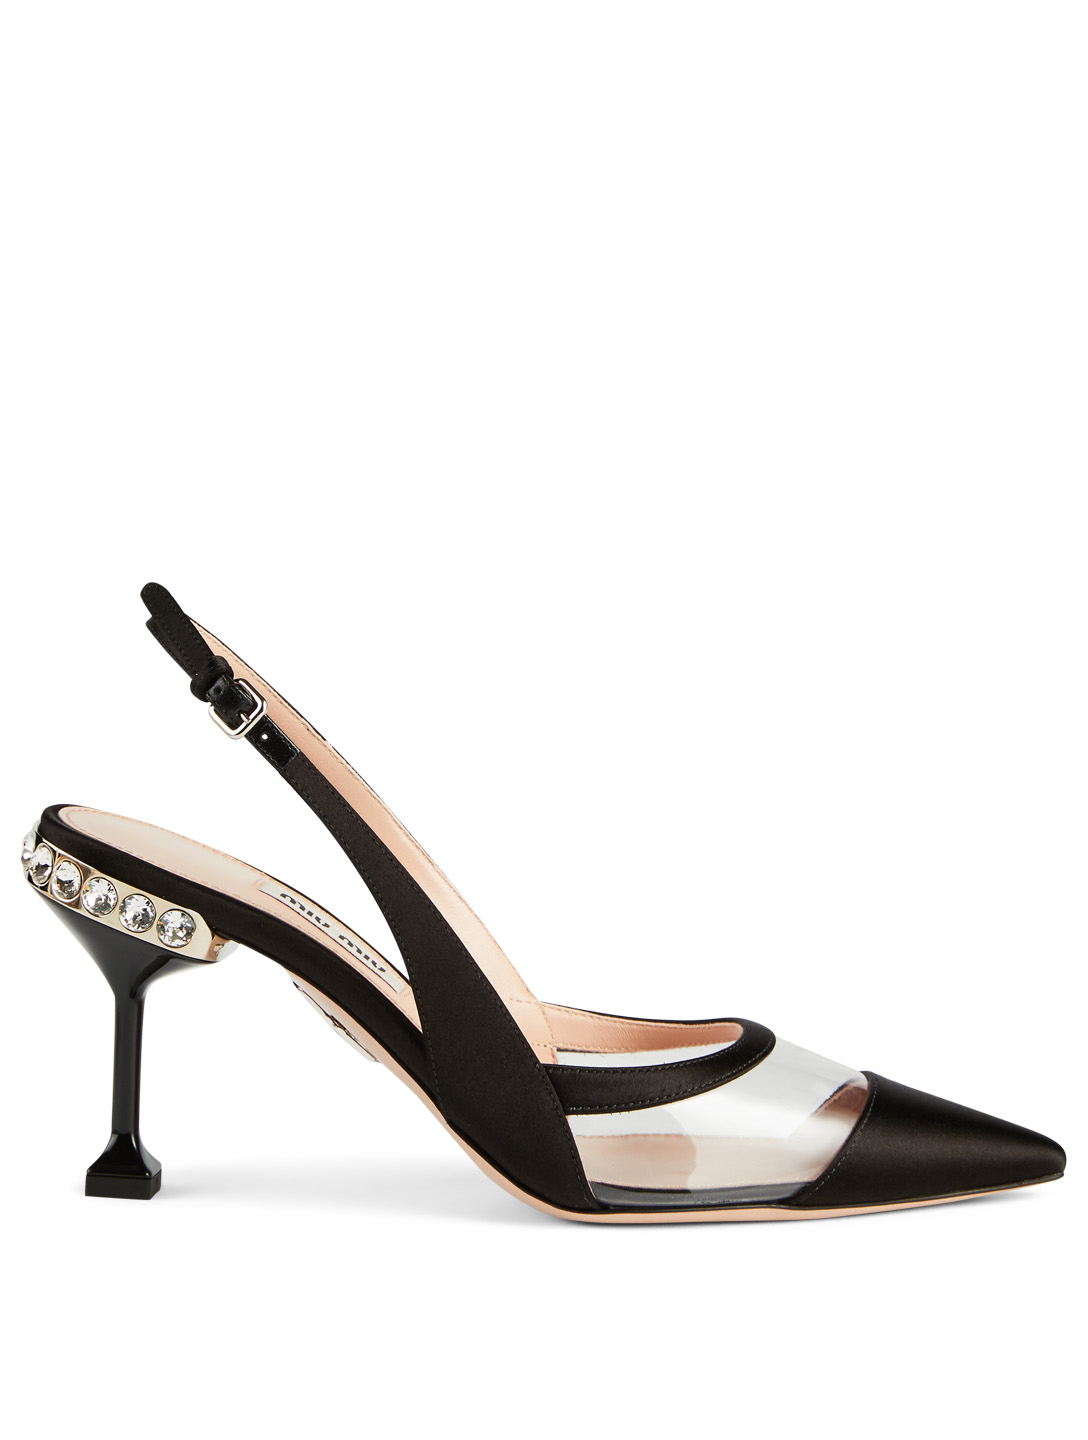 698da800333 MIU MIU Satin And PVC Slingback Pumps With Crystal Heel Women s Black ...